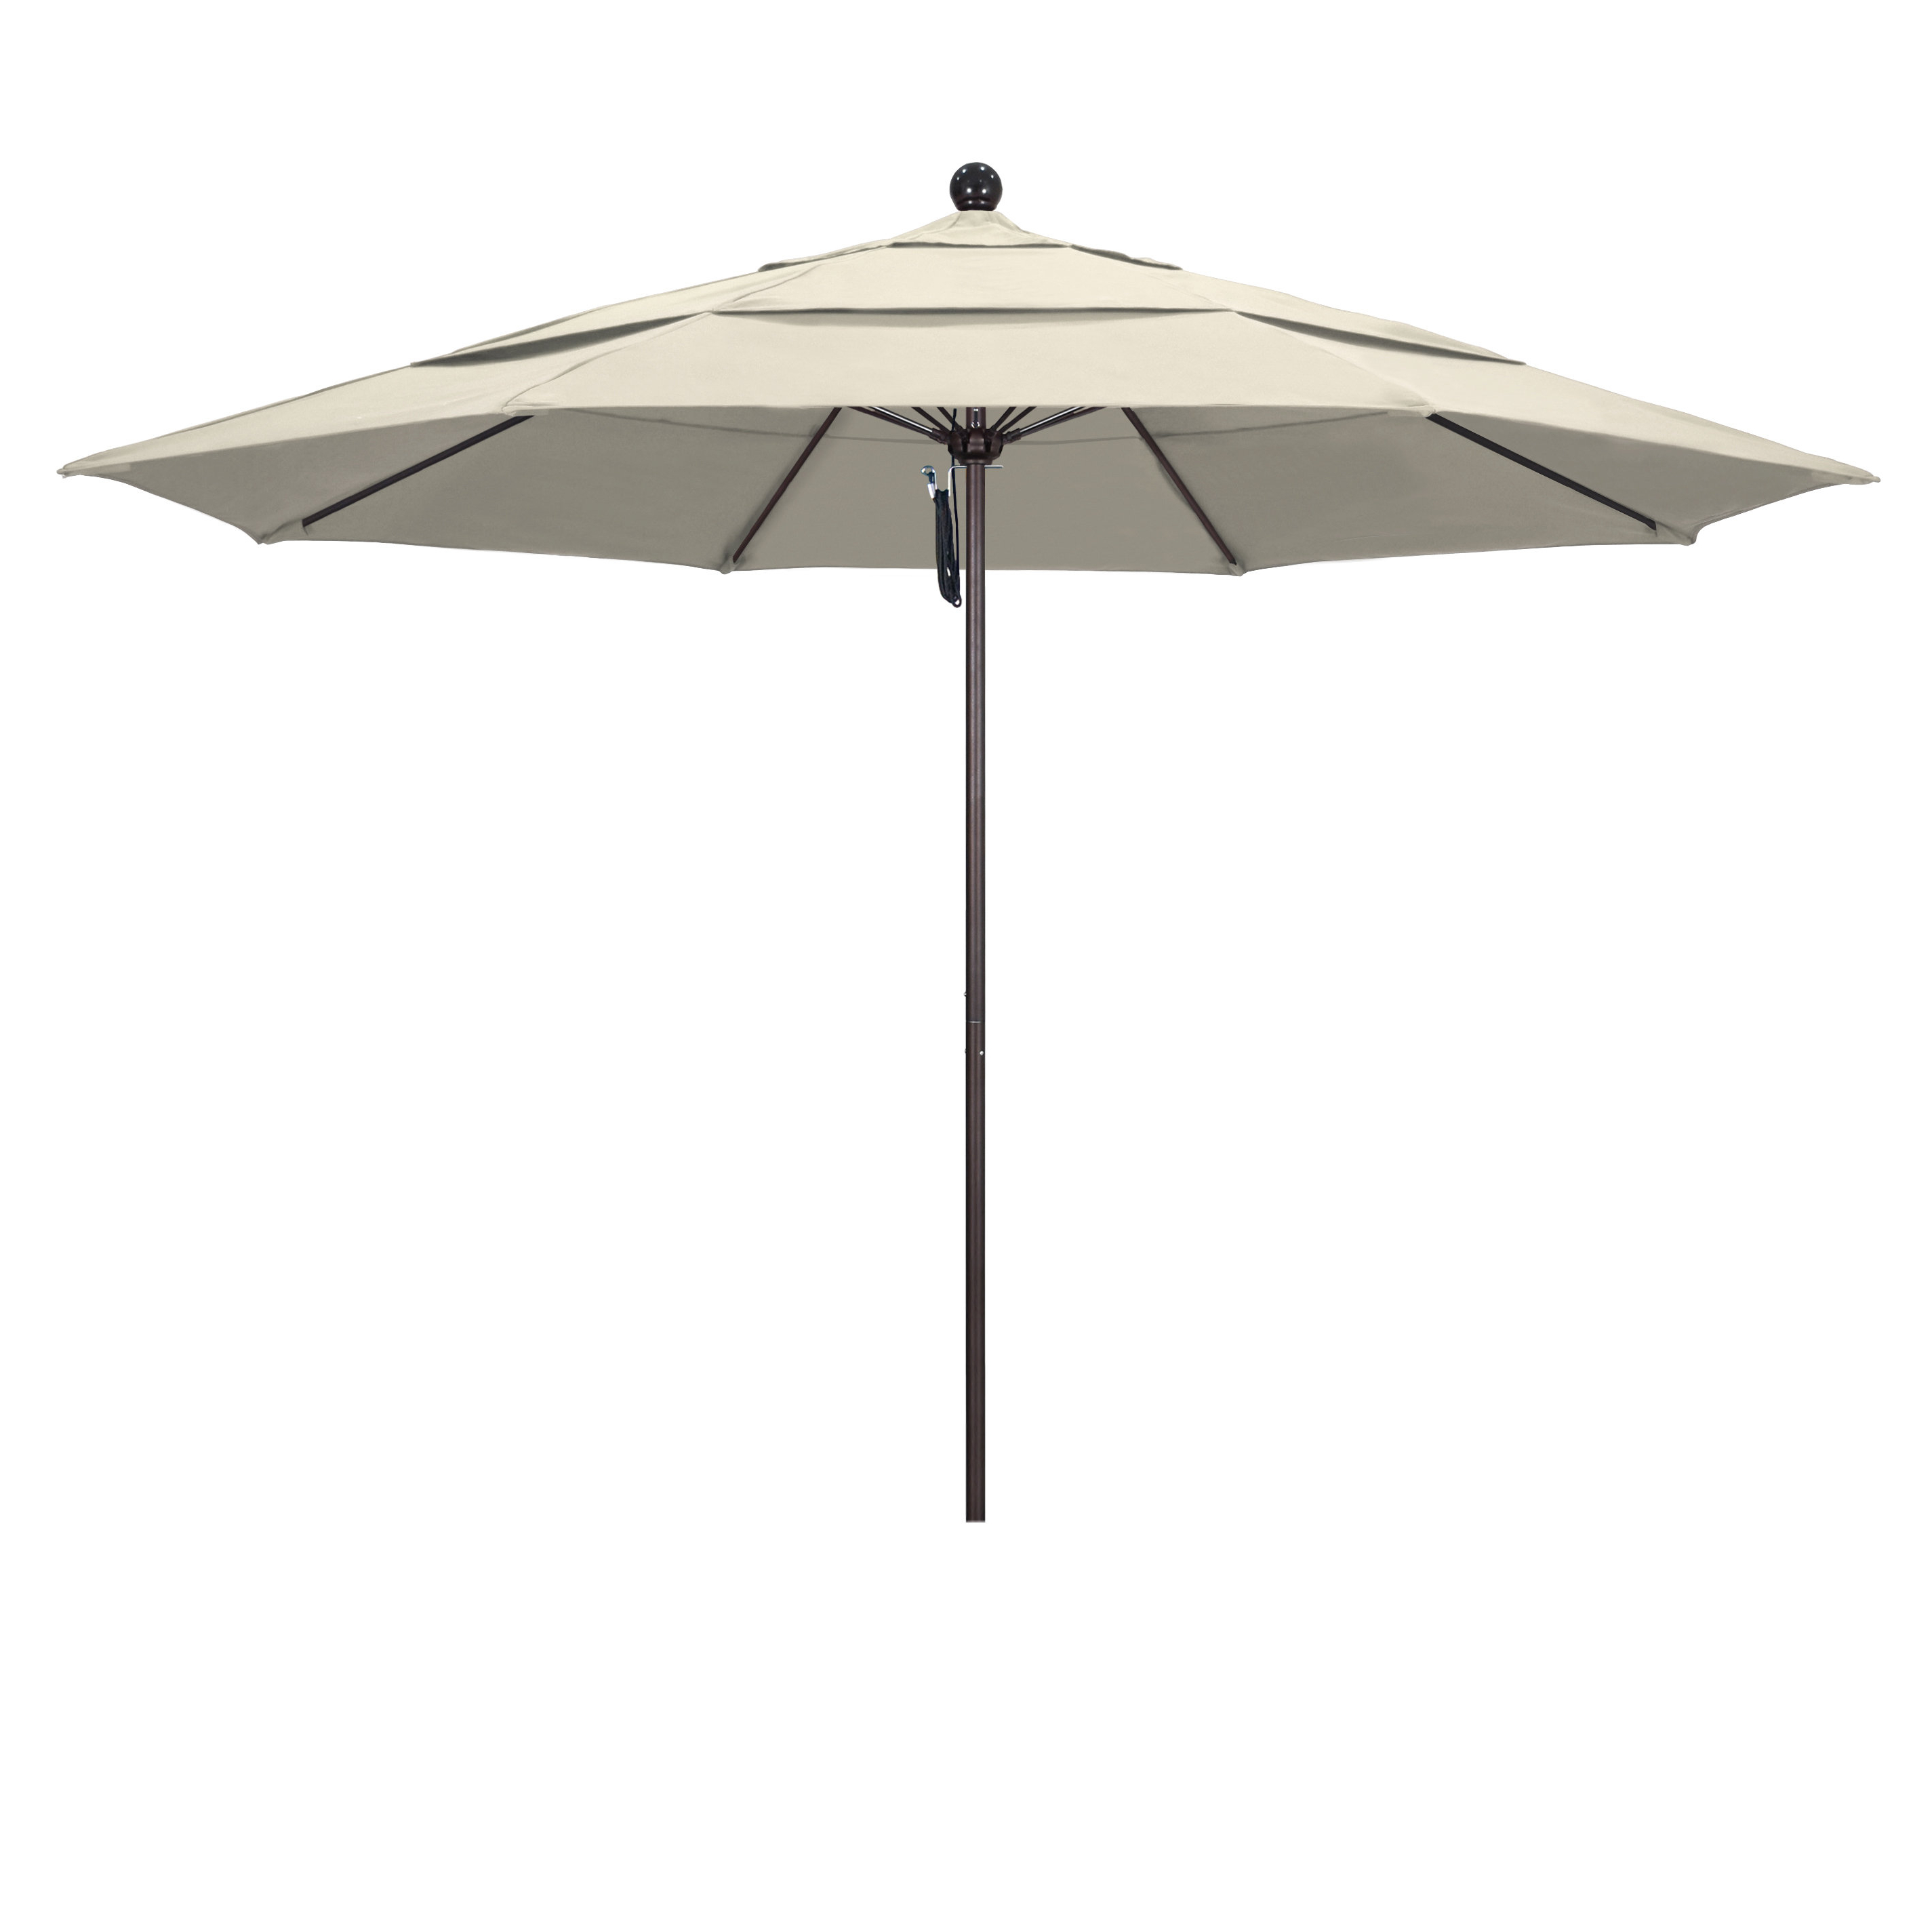 Sol 72 Outdoor Duxbury 11' Market Umbrella With Regard To Well Known Lambeth Market Umbrellas (View 14 of 20)